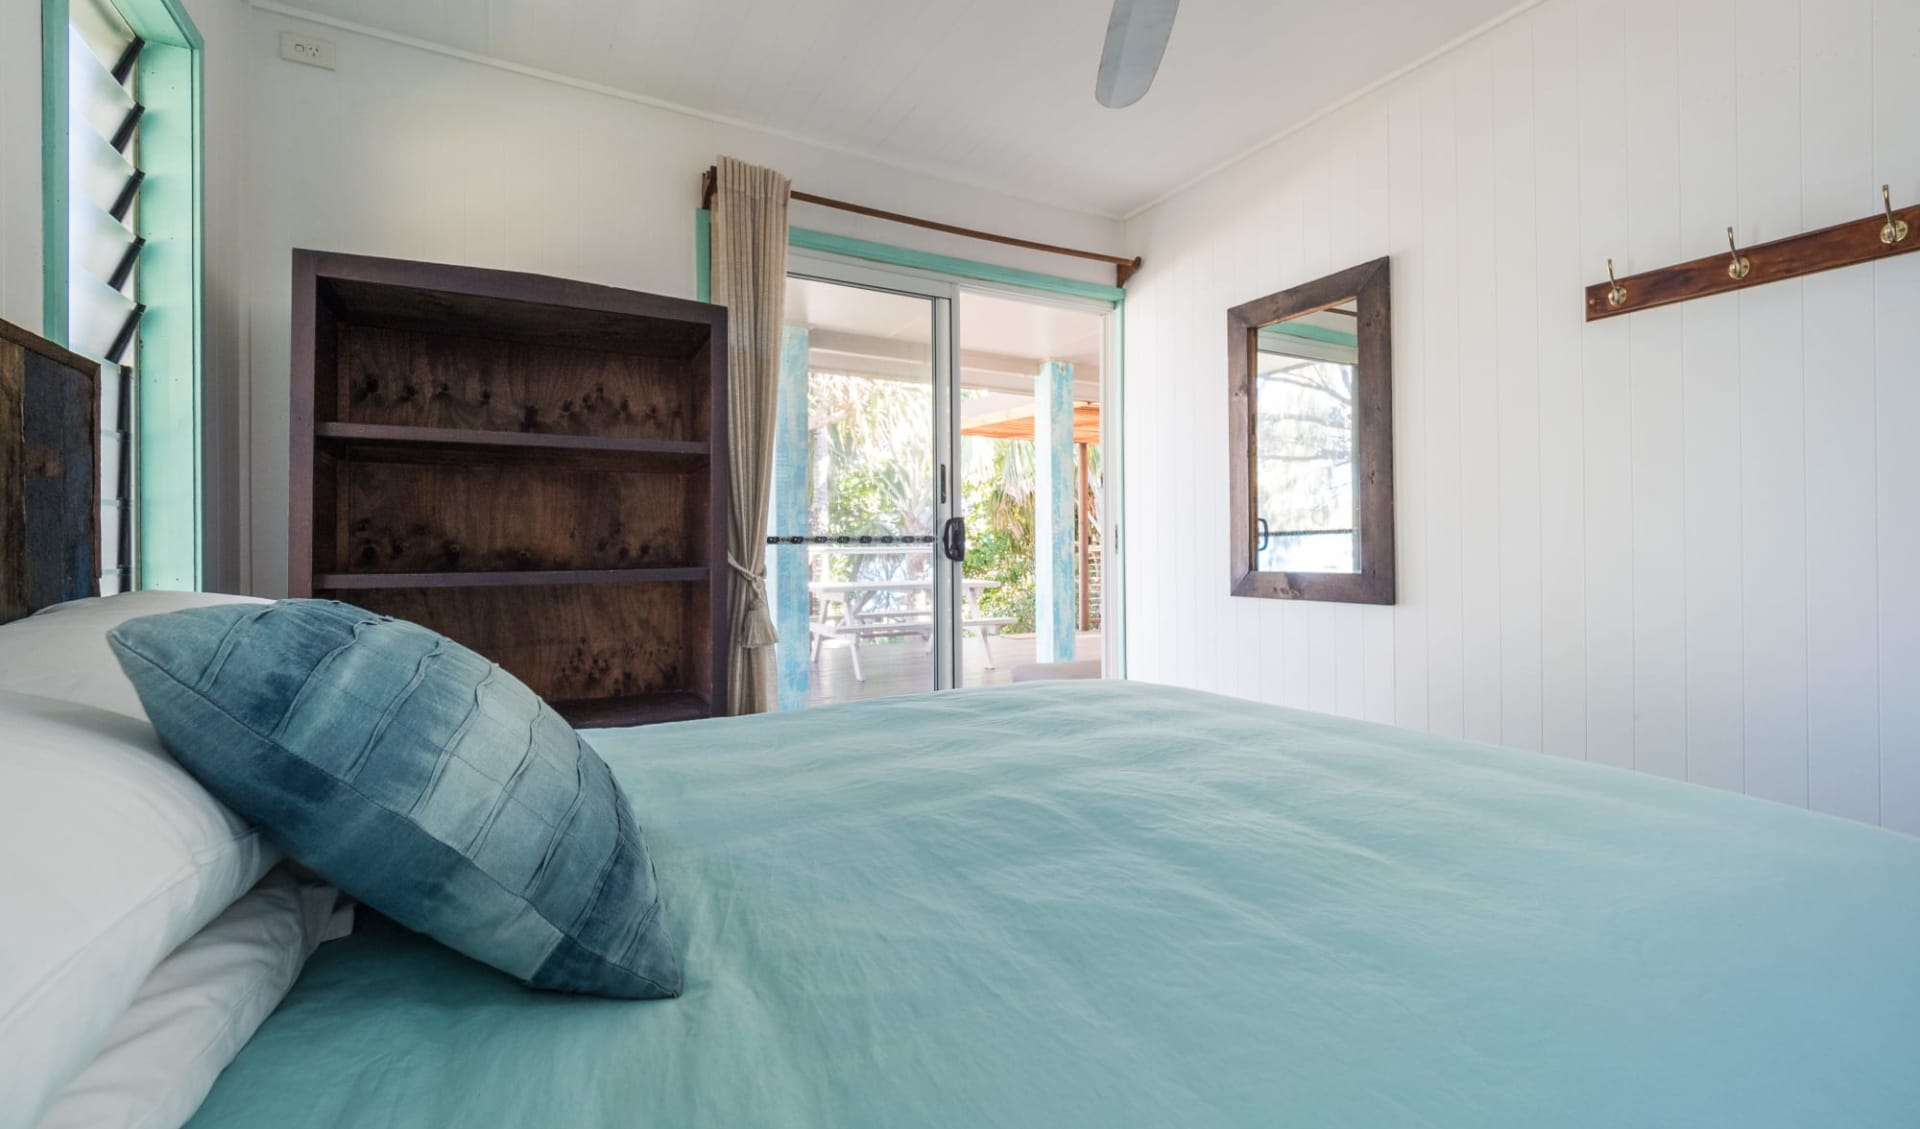 Pumpkin Island in Yeppoon:  Coral Cove Main Bed